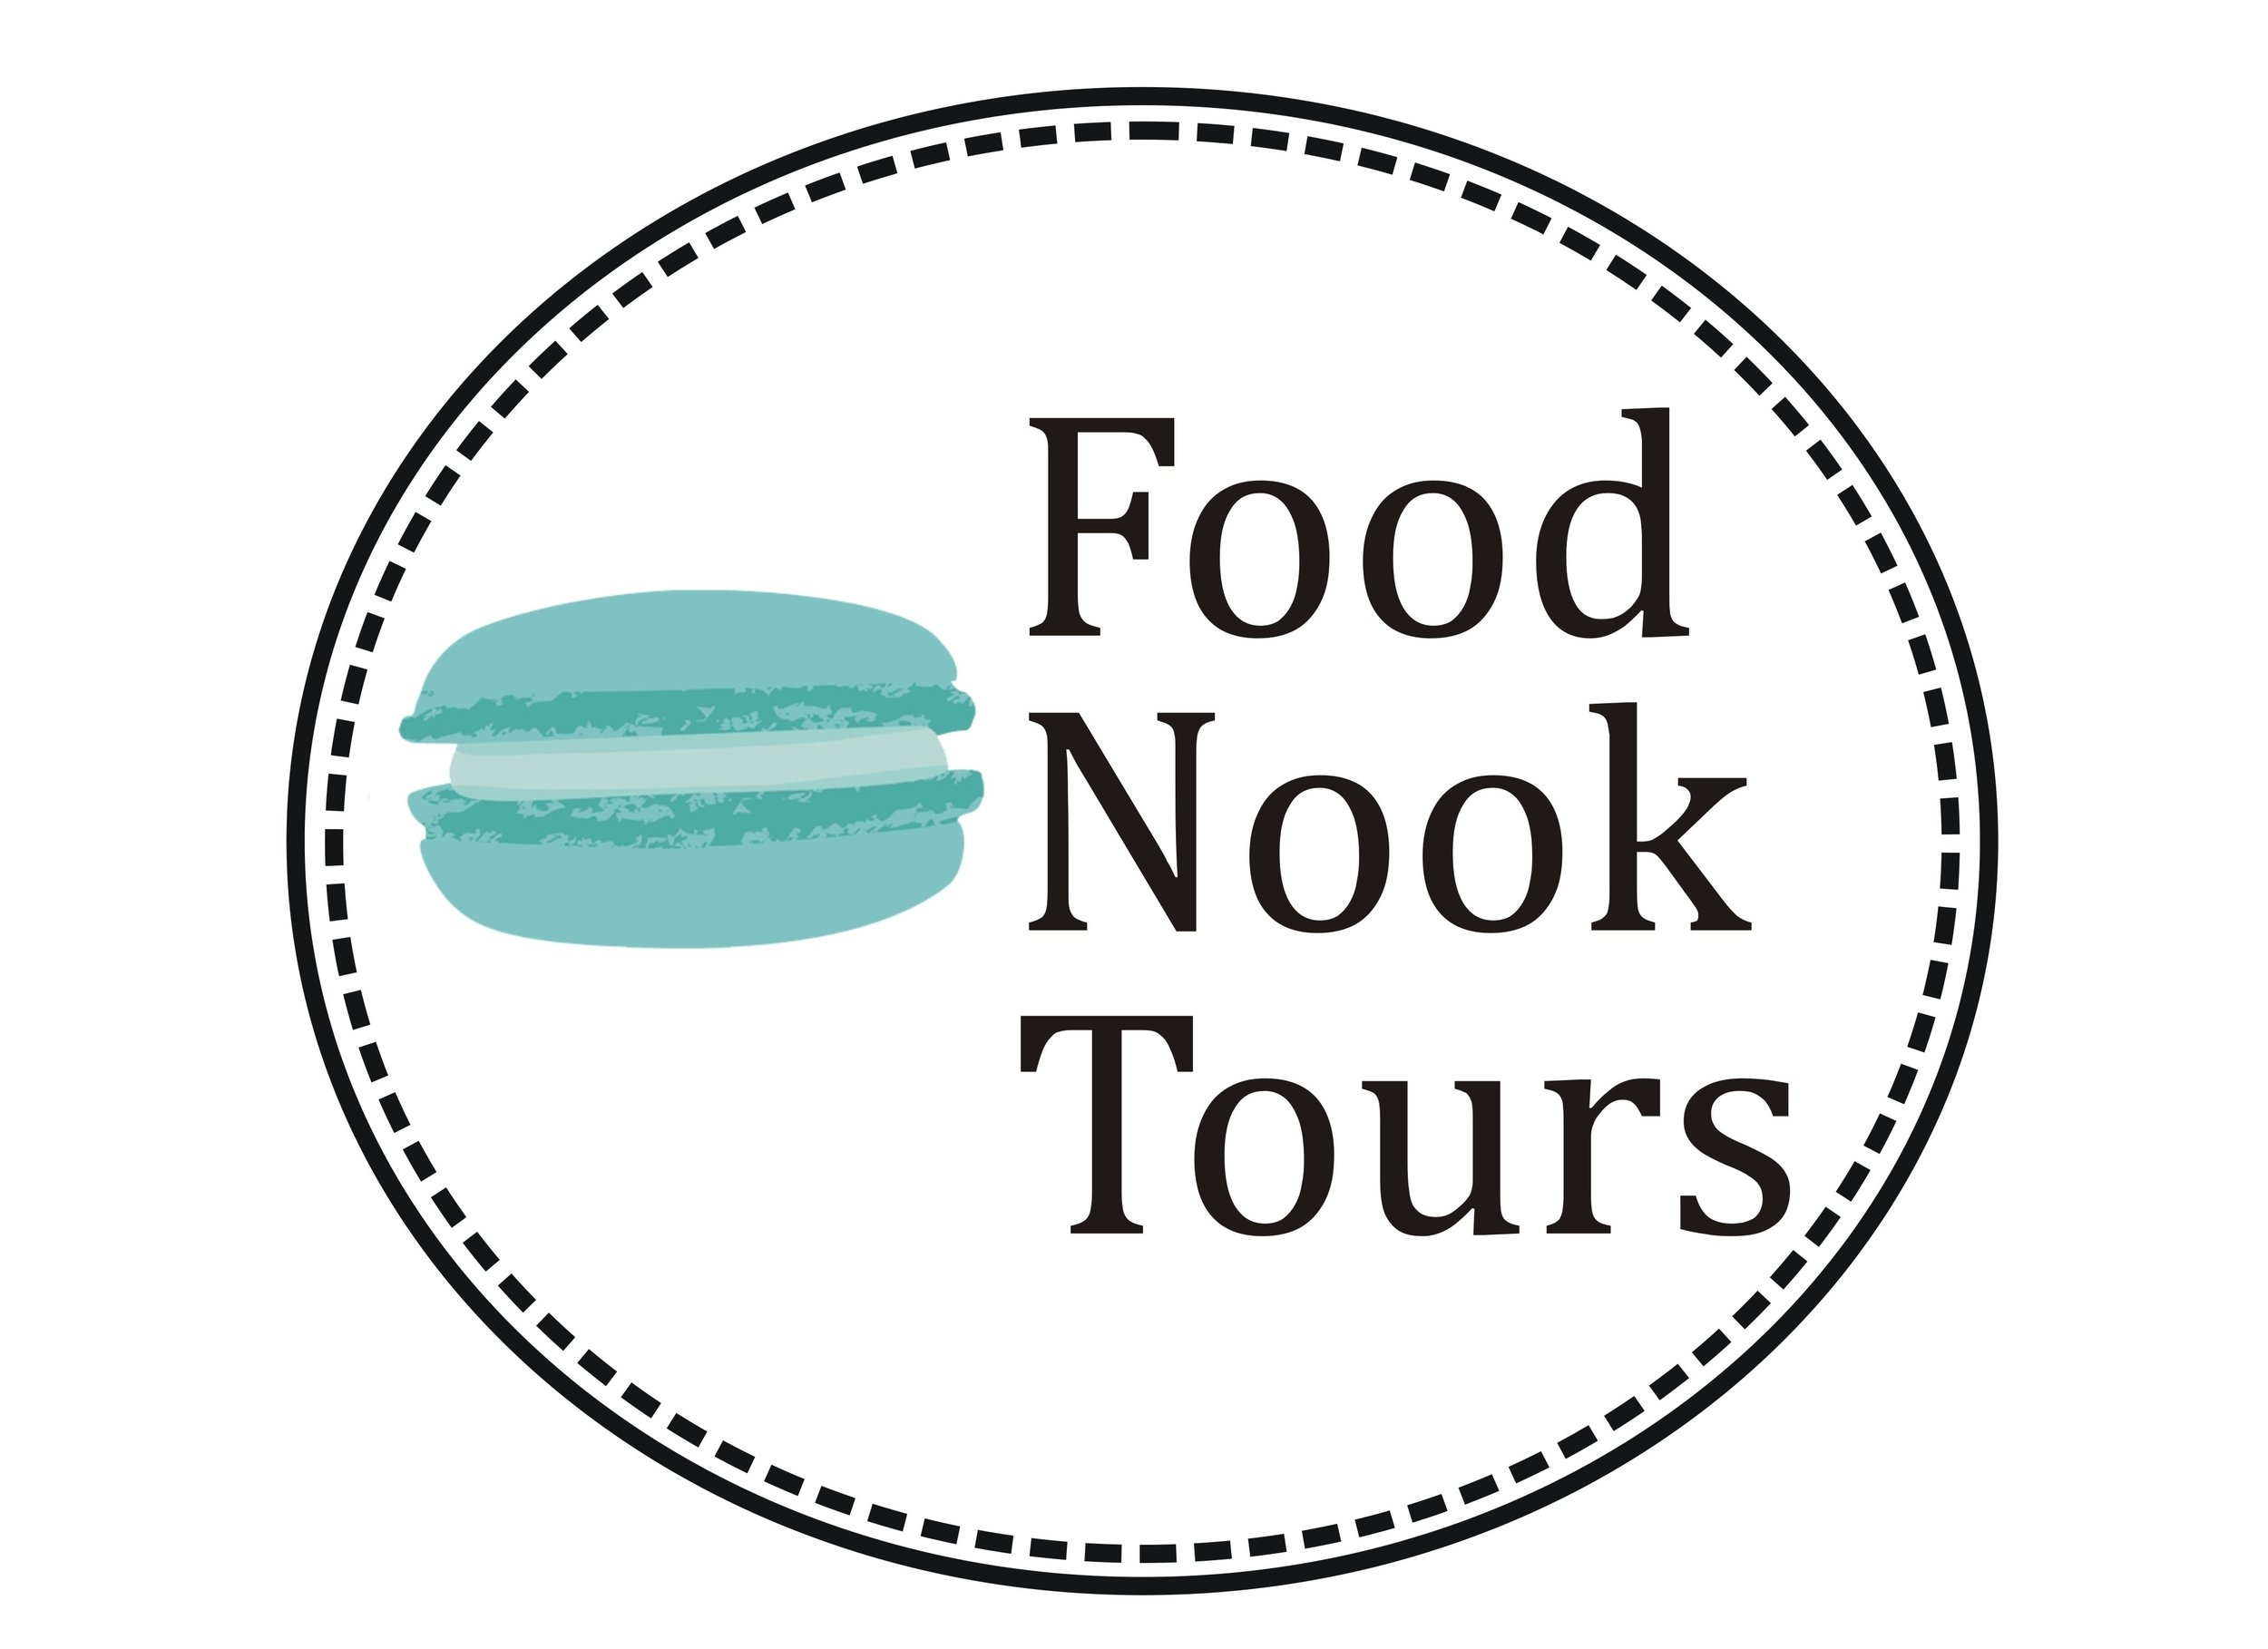 Food Nook Tours